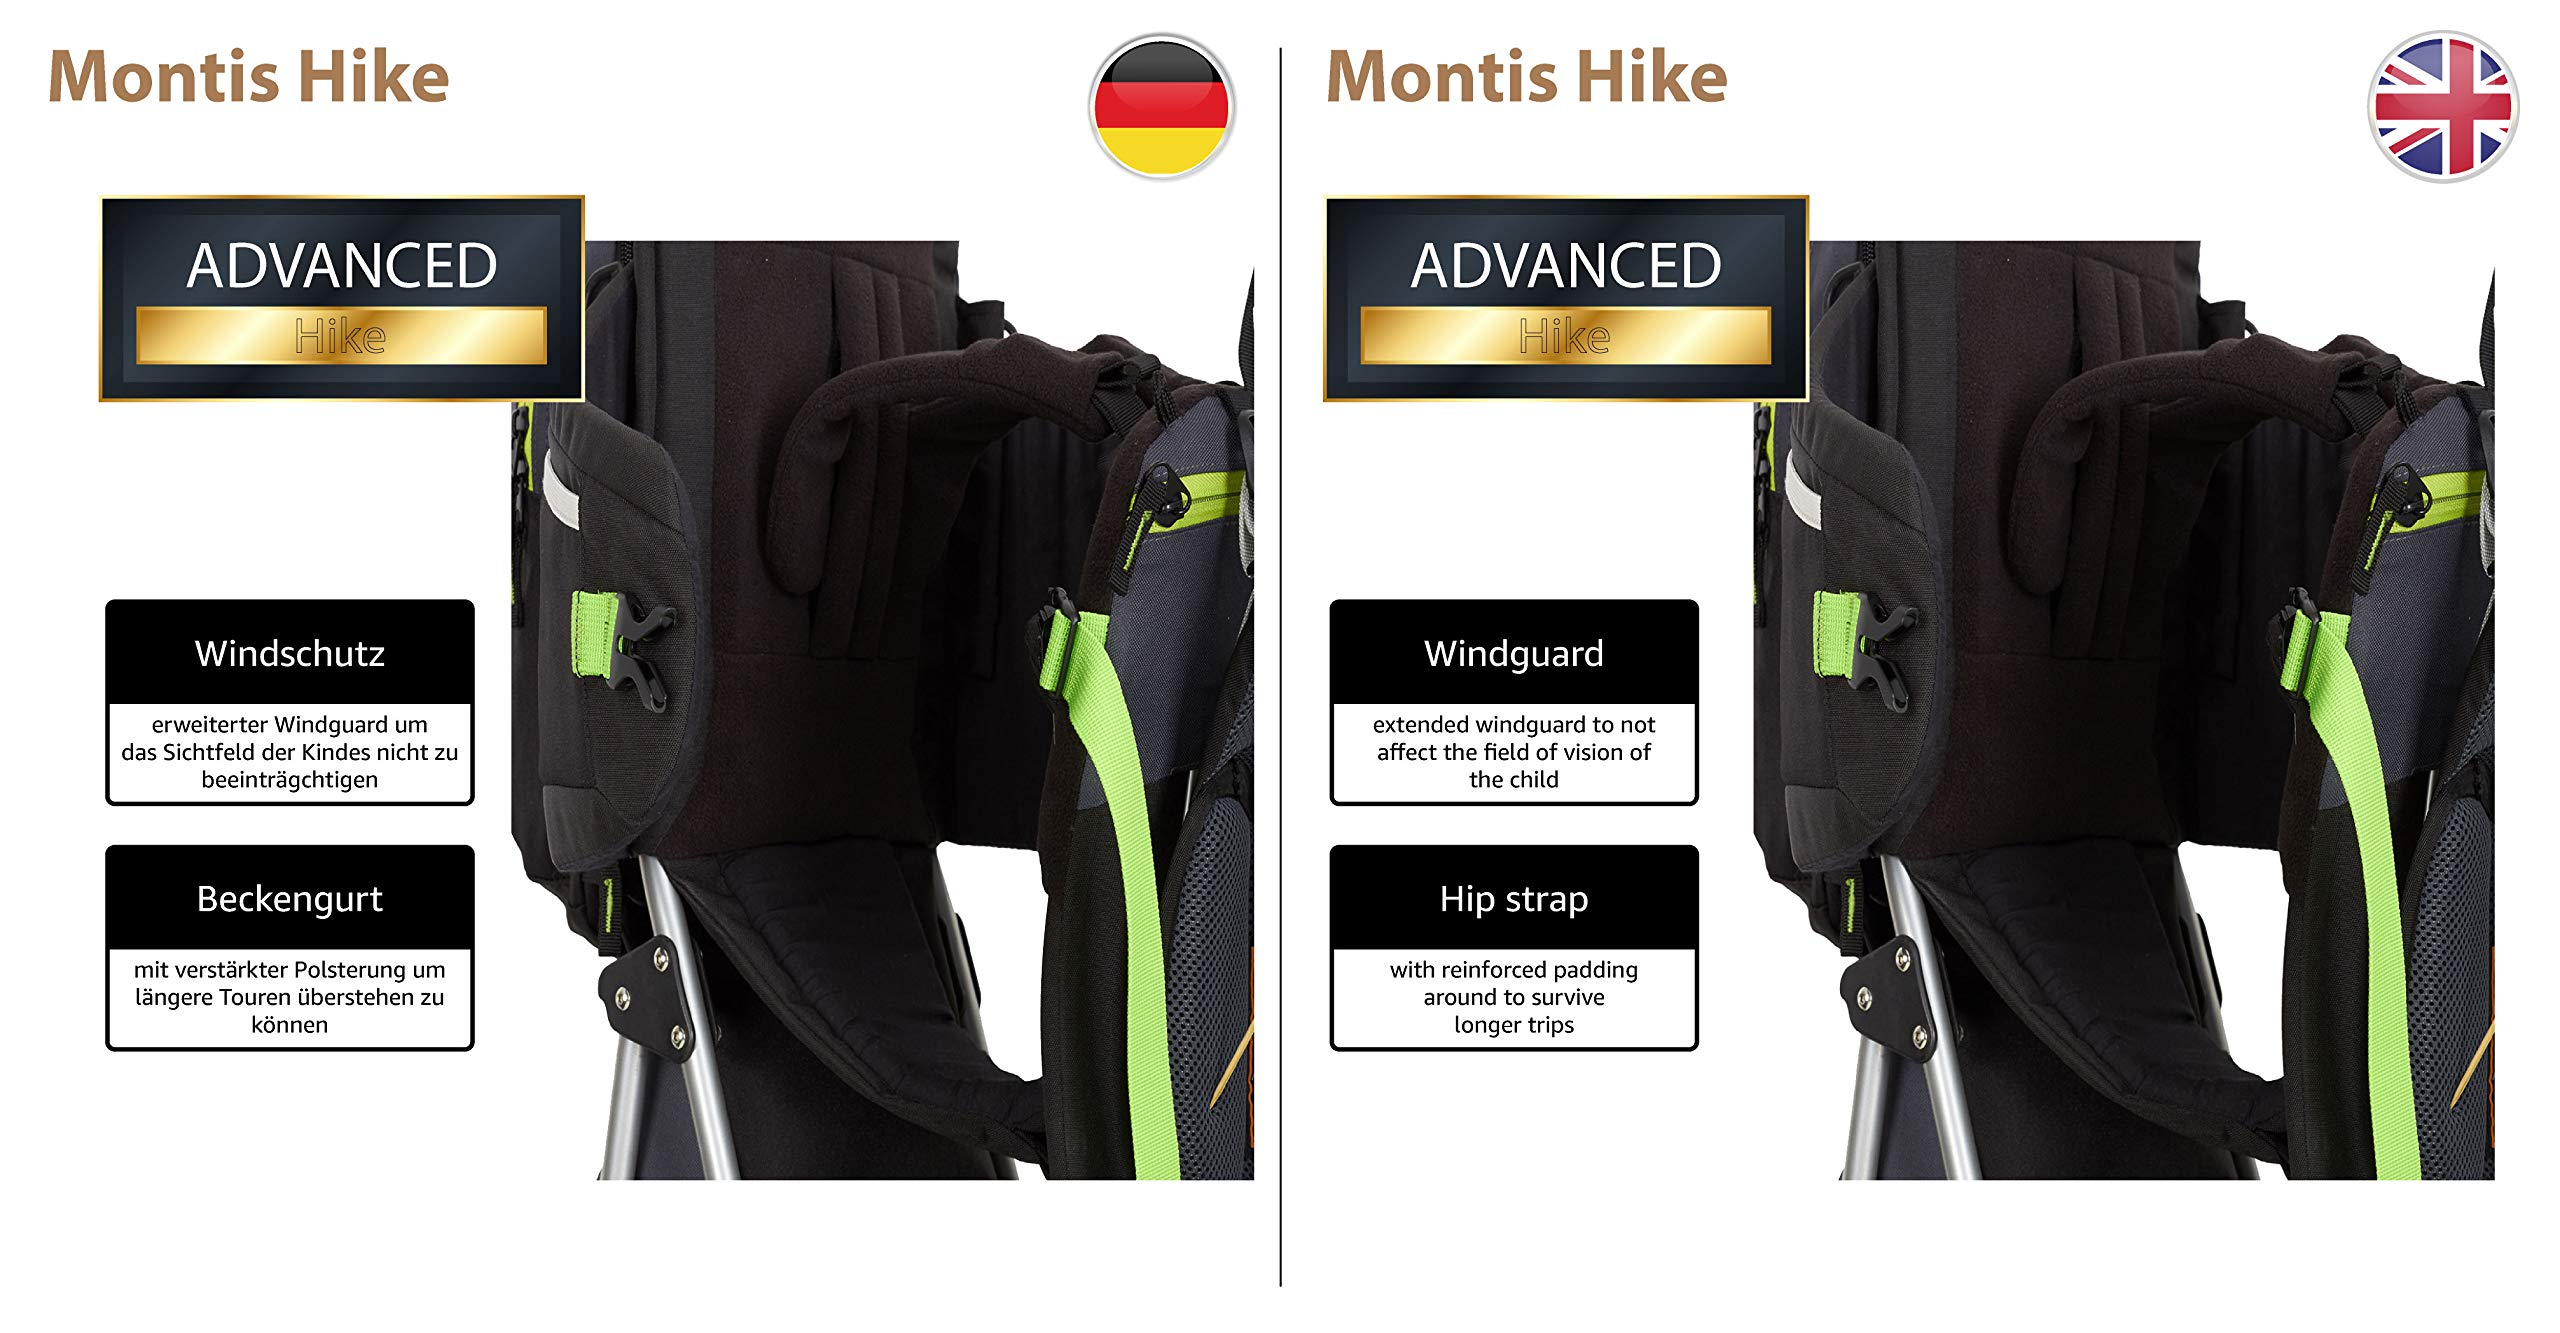 MONTIS HIKE, Premium Back Baby/Child Carrier, Up to 25kg, (black) M MONTIS OUTDOOR 89cm high, 37cm wide | up to 25kg | various colours | 28L seat bag Laminated and dirt-repellant outer material | approx. 2.2kg (without extras) Fully-adjustable, padded 5-point child's safety harness | plush lining, raised wind guard, can be filled from both sides | forehead cushion 7